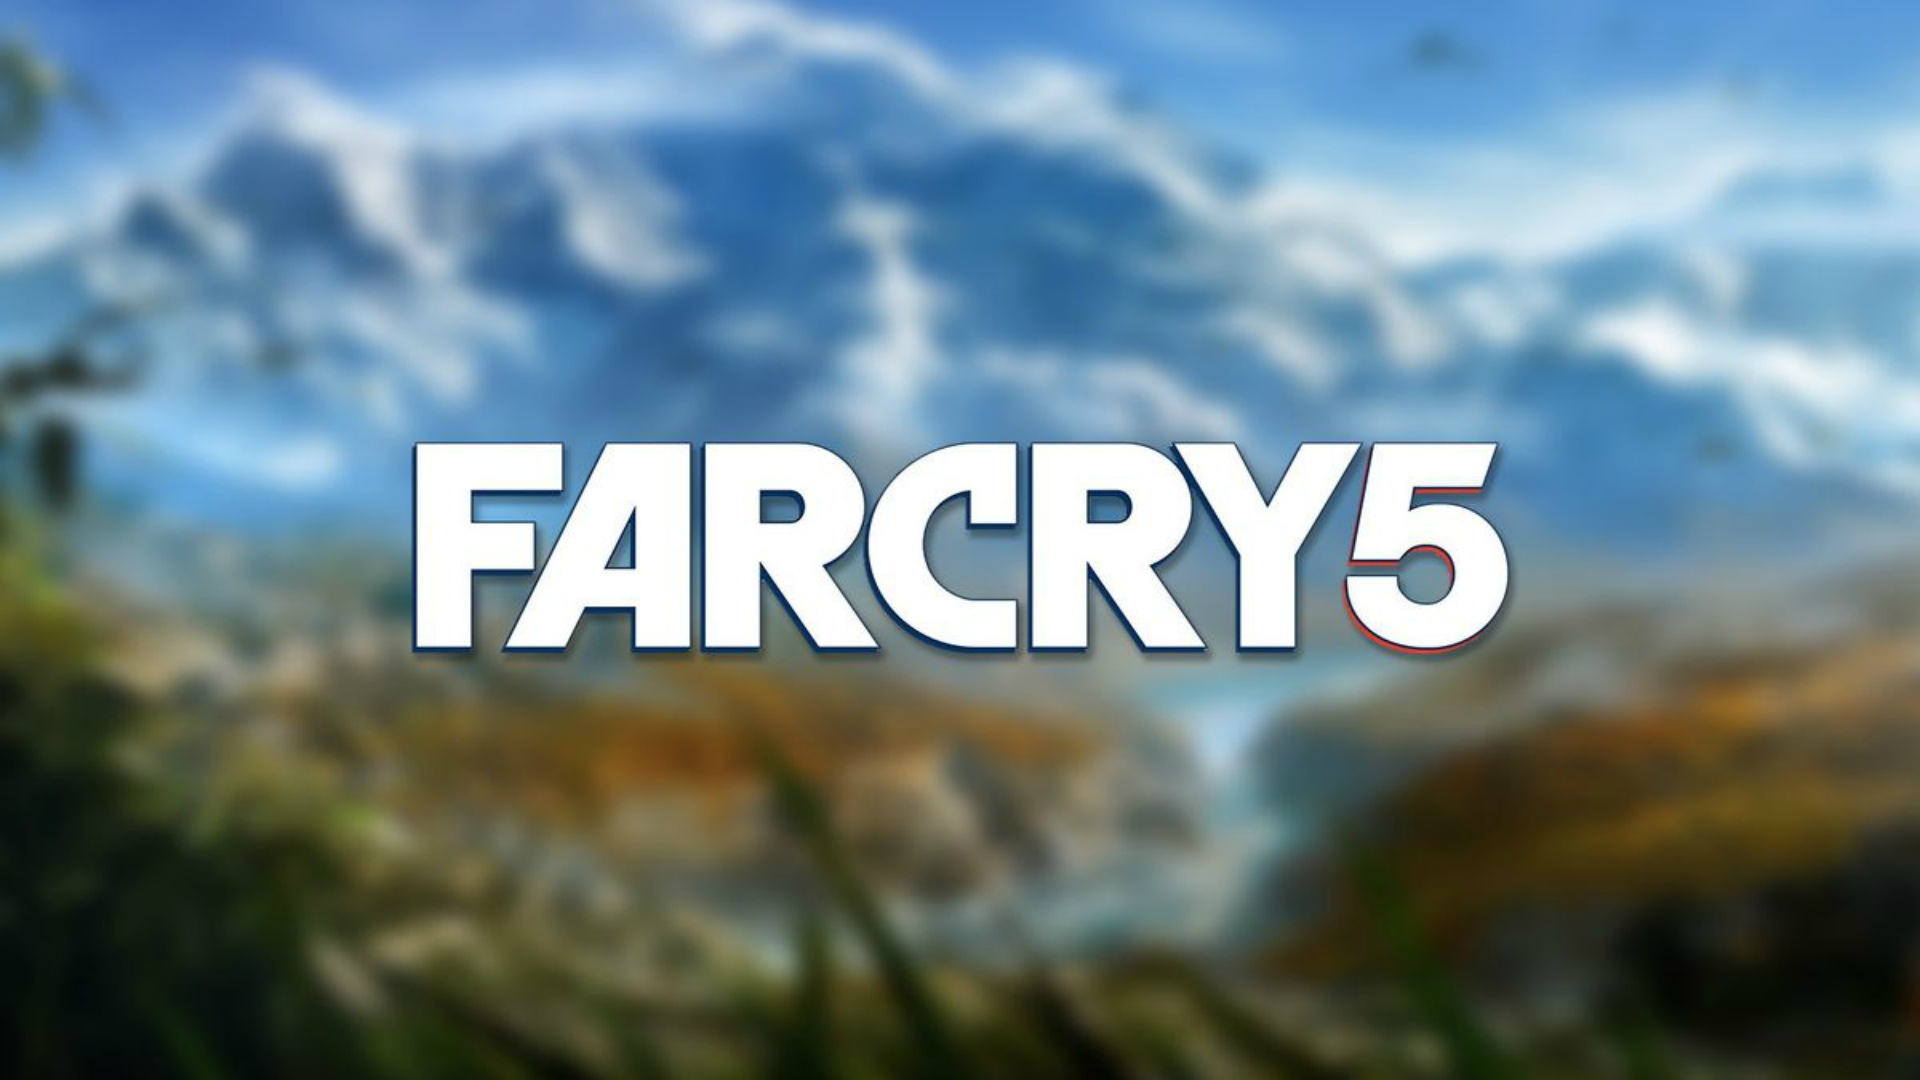 Ubisoft Releases Far Cry 5 Teaser; Full Reveal Coming This Week